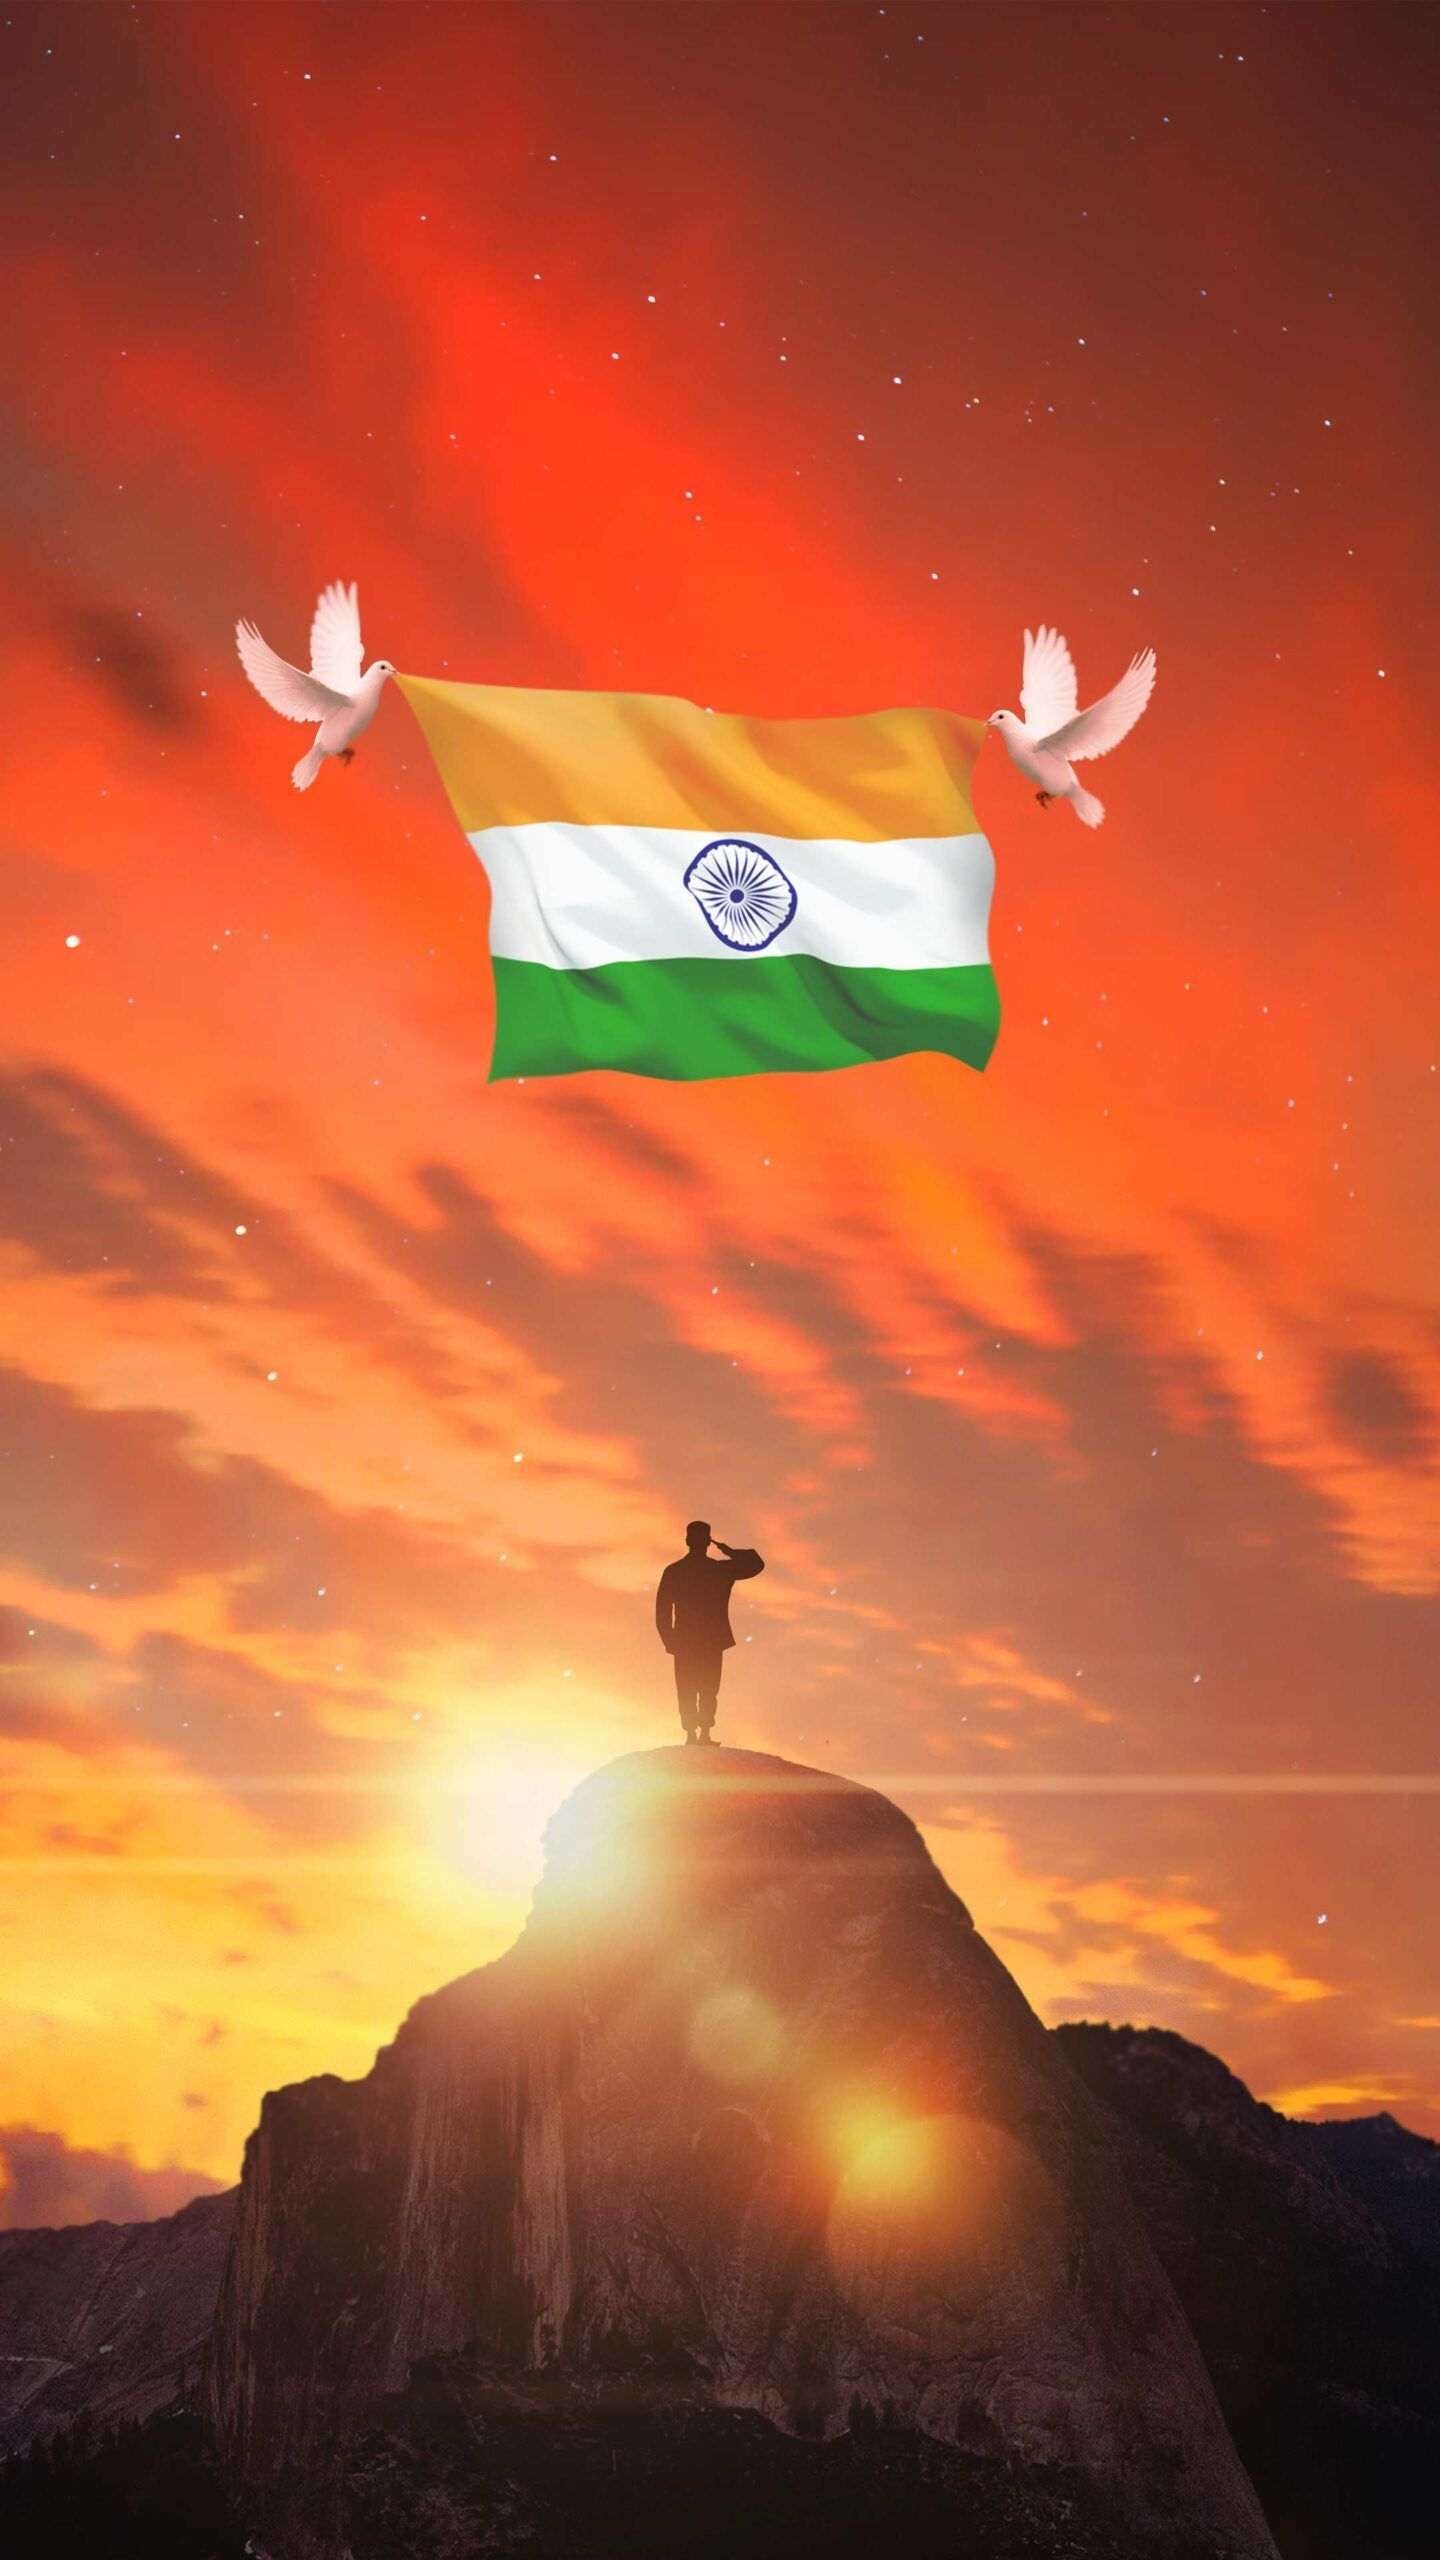 India Republic Day Iphone Wallpaper In 2020 Live Wallpaper Iphone Indian Flag Wallpaper Army Wallpaper